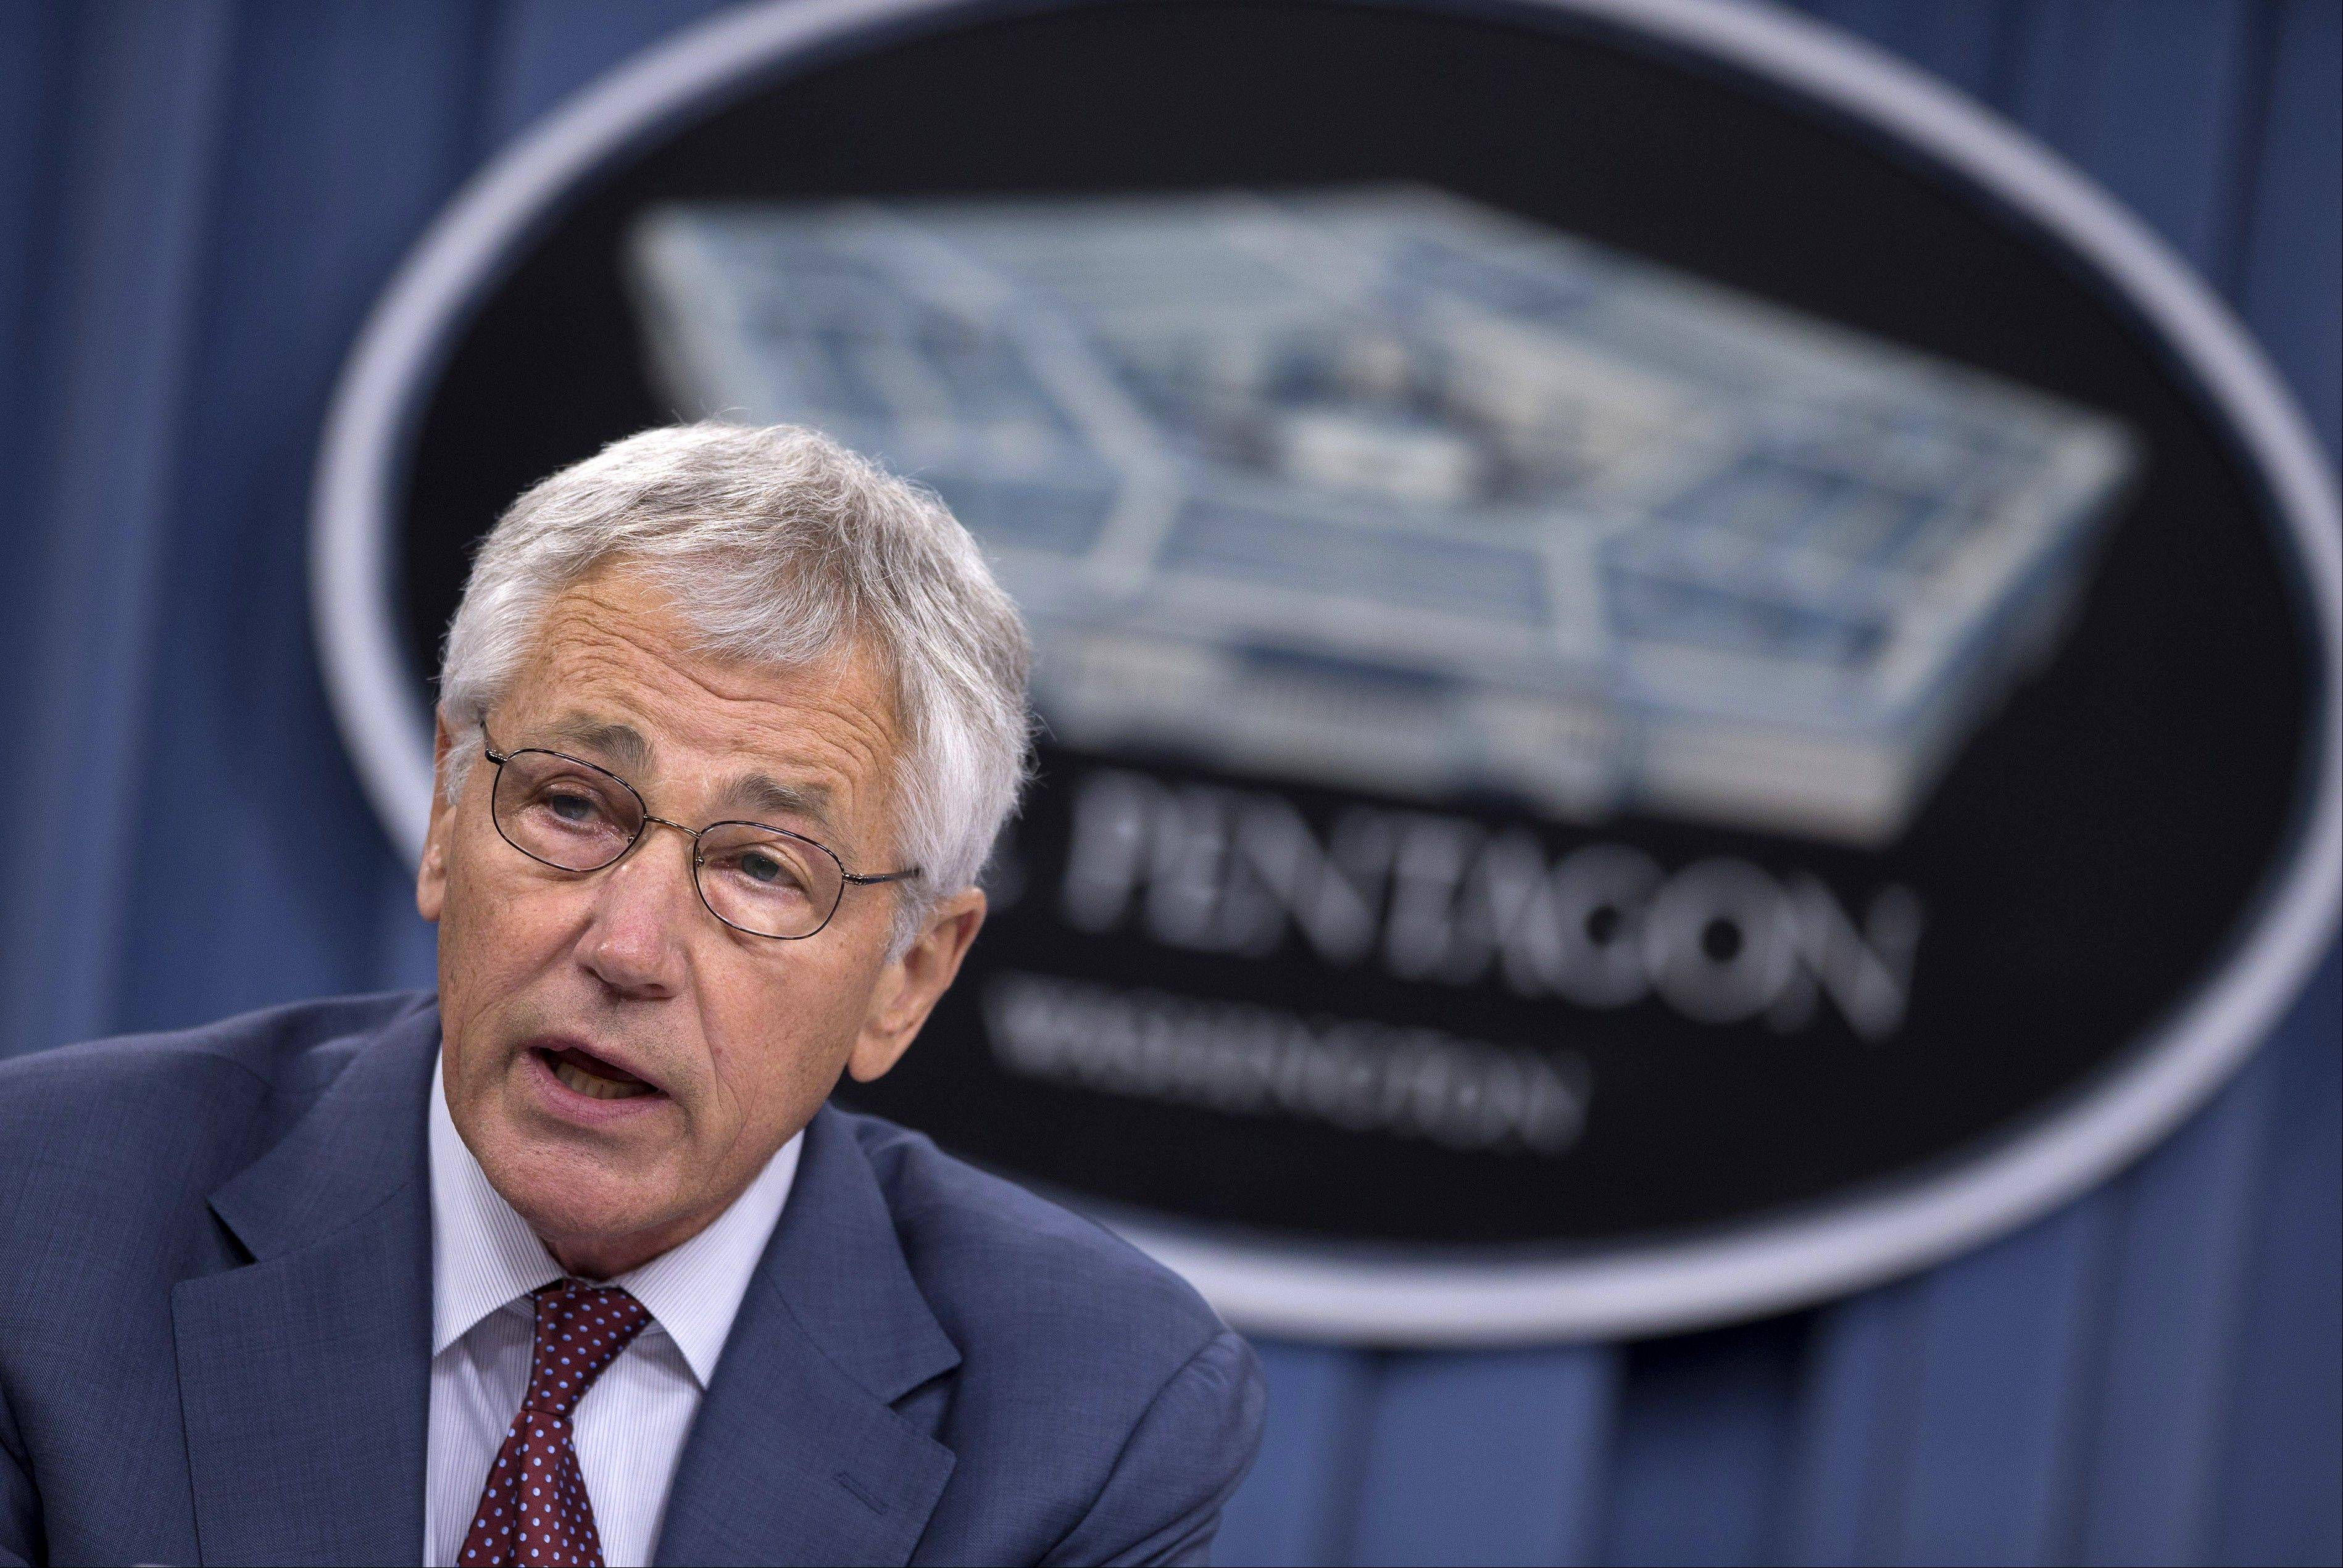 U.S. Defense Secretary Chuck Hagel will meet for the first time with China�s Minister of National Defense Gen. Chang Wanquan at the Pentagon on Monday. Hagel is presiding over a Pentagon making a deliberate �pivot� to Asia after more than a decade of wars in the greater Middle East, and improving ties with China is at the heart of the Obama administration�s Asia strategy.